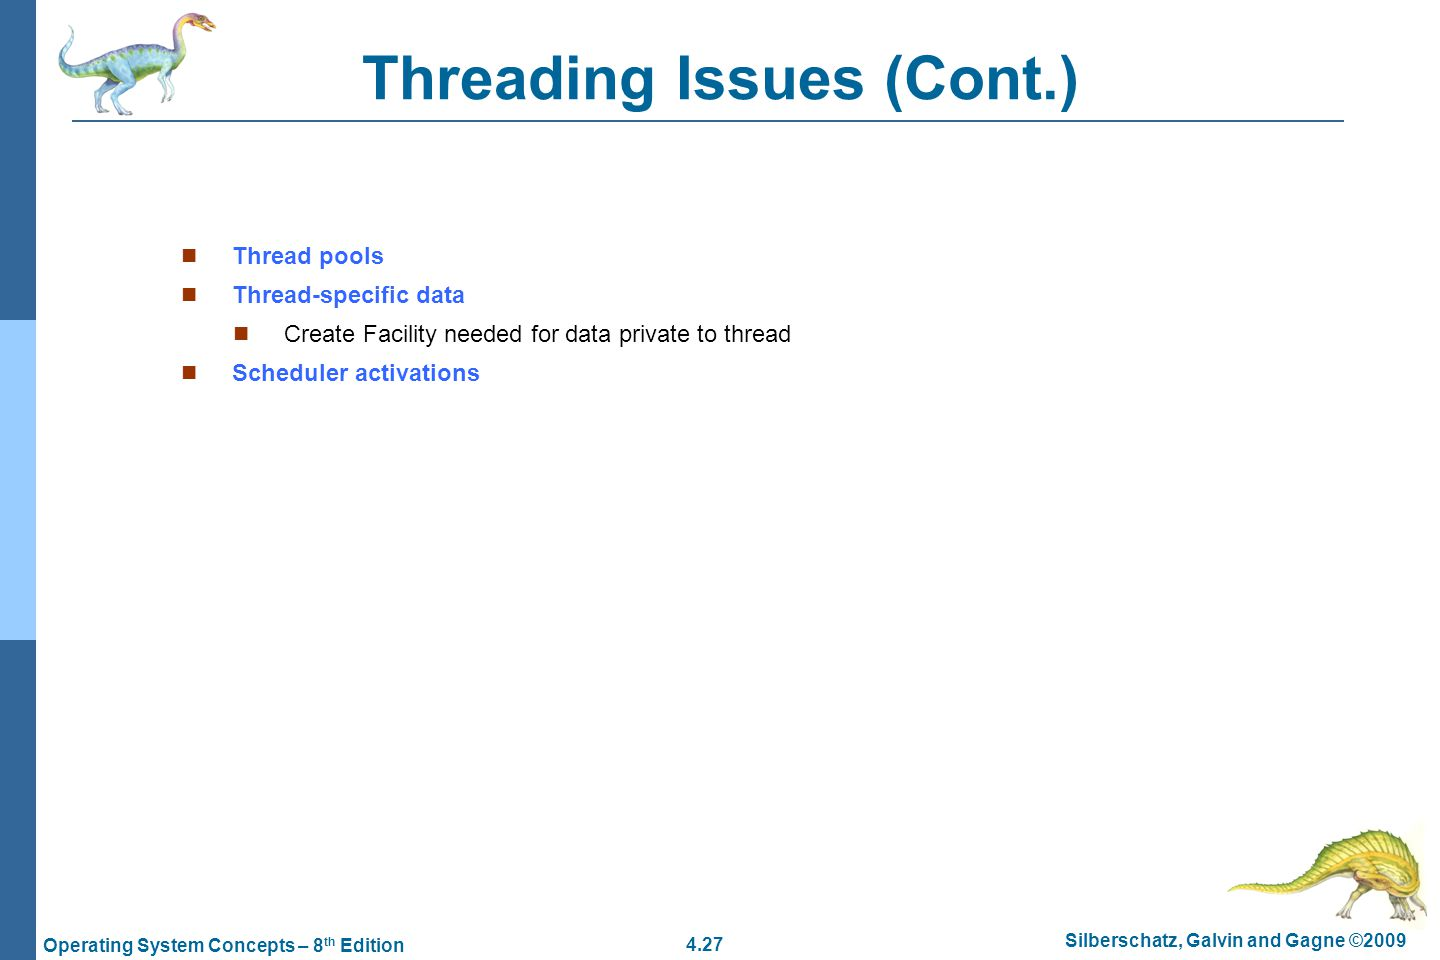 4.27 Silberschatz, Galvin and Gagne ©2009 Operating System Concepts – 8 th Edition Threading Issues (Cont.) Thread pools Thread-specific data Create Facility needed for data private to thread Scheduler activations